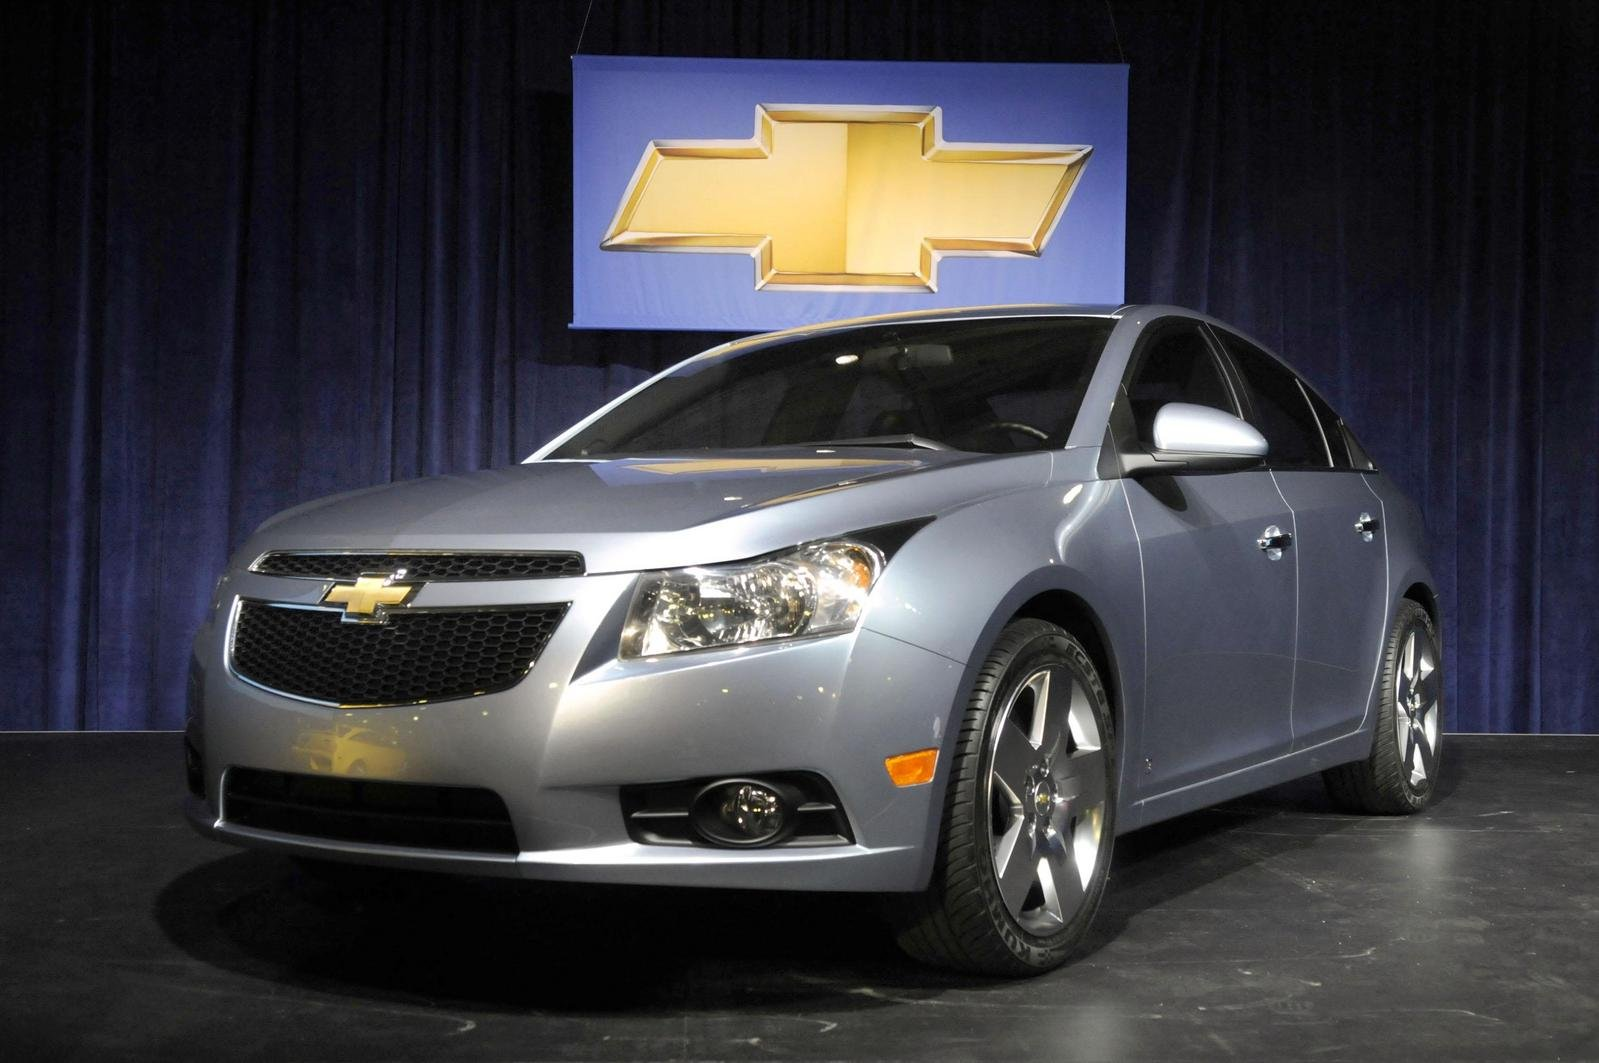 2010 chevrolet cruze picture 263871 car review top speed. Black Bedroom Furniture Sets. Home Design Ideas